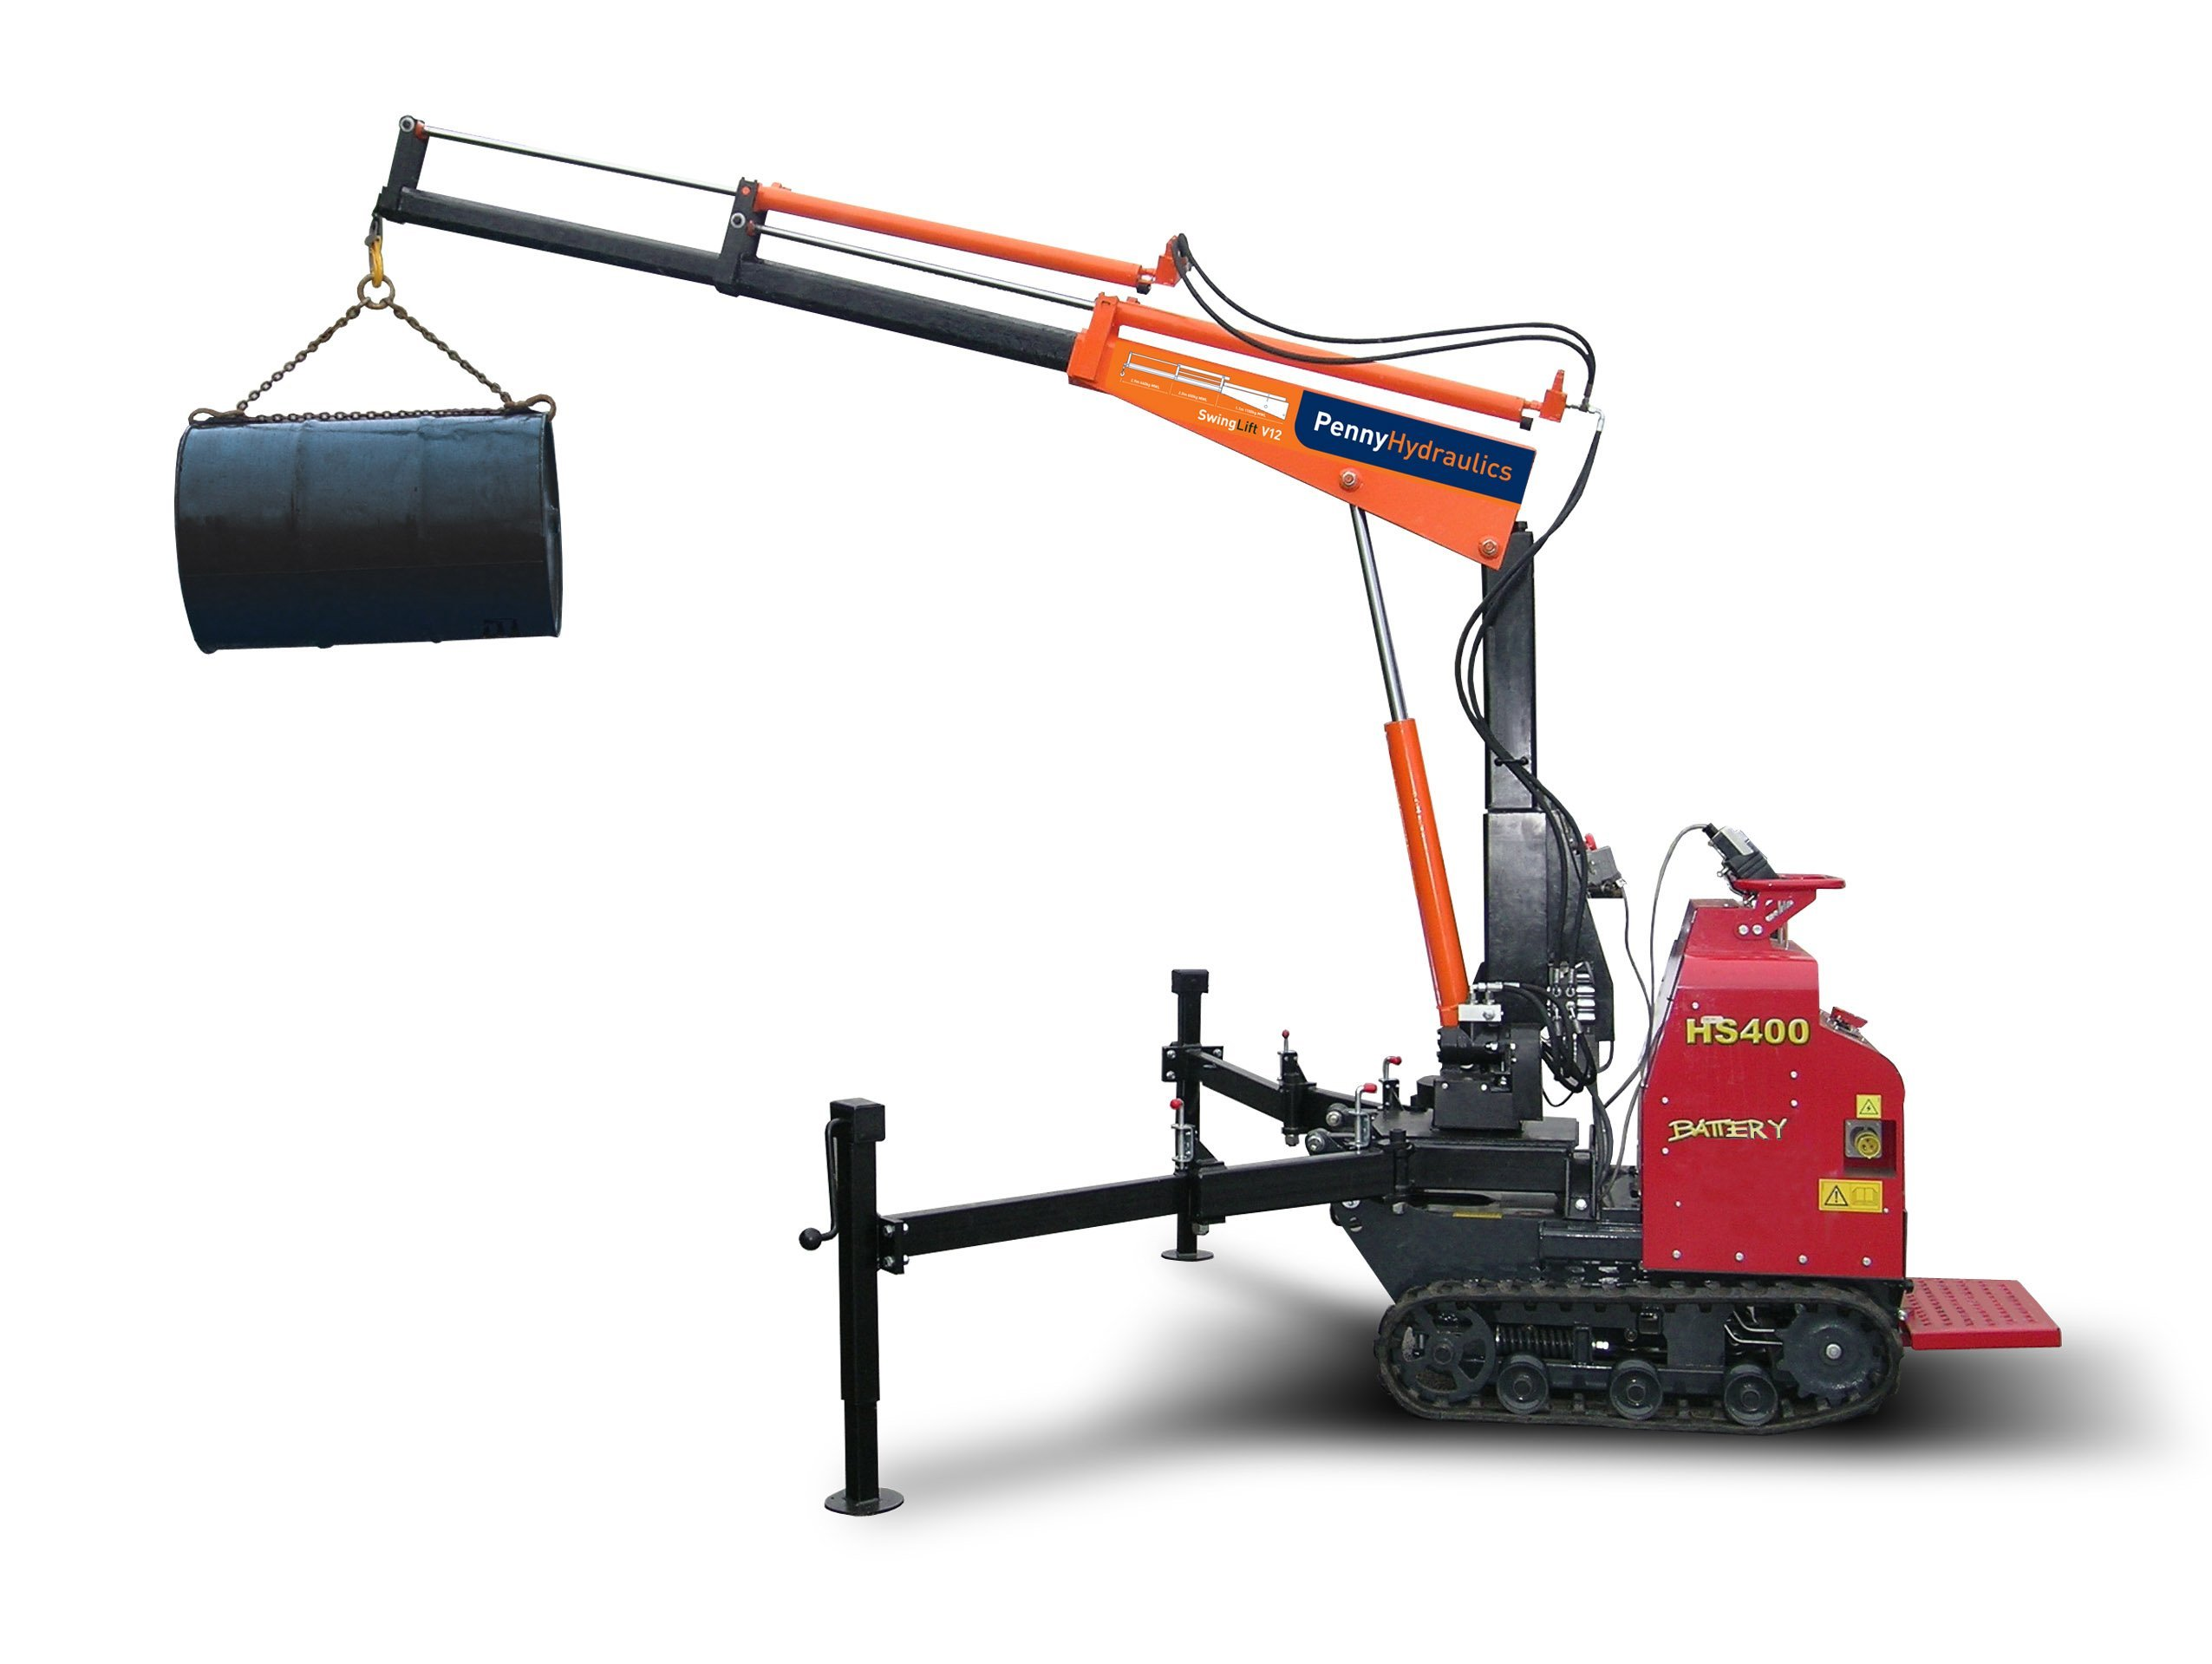 Download besides Watch likewise Integrated Logistics A Leading Provider Of Crane Hiring And Renting additionally Truck together with Load Securing Vehicle Operator Guidance. on semi truck cranes